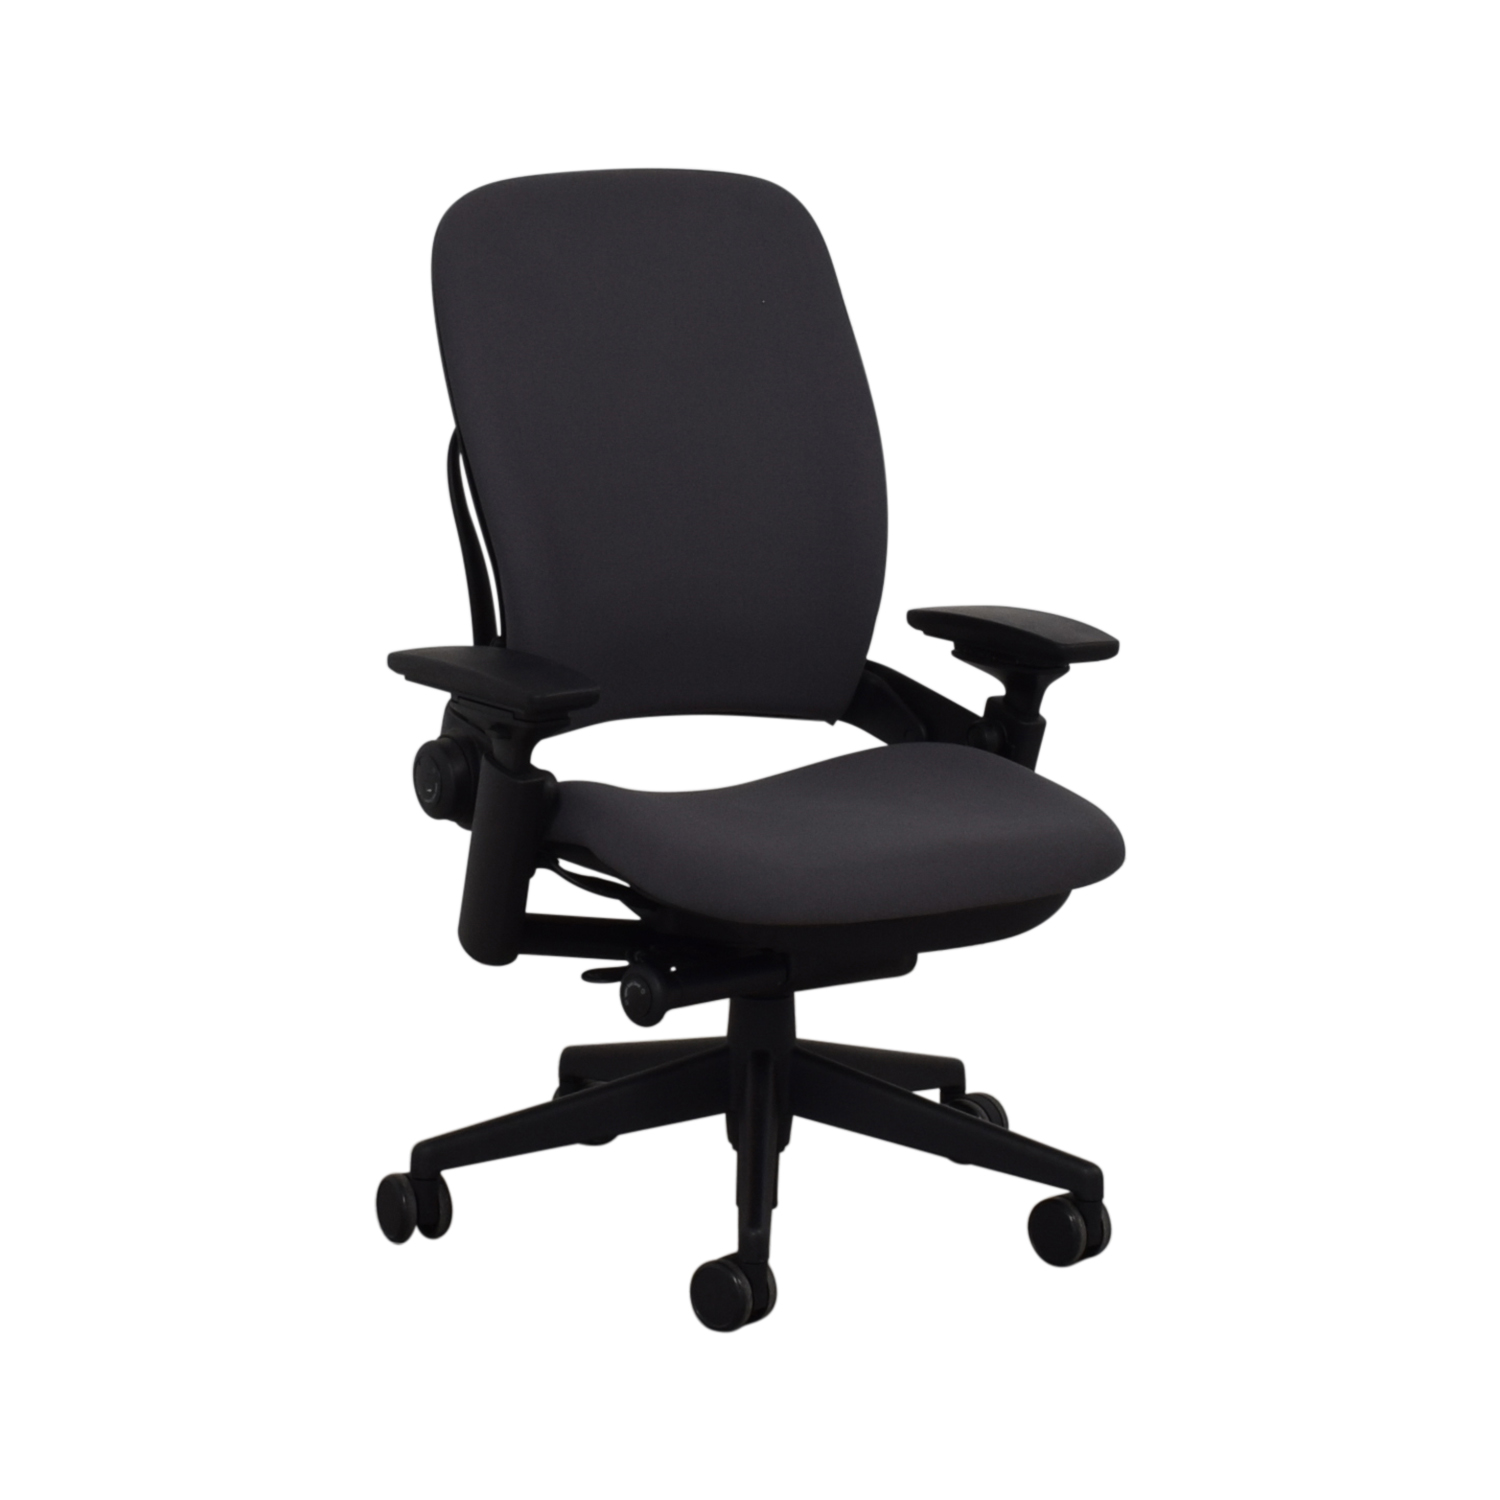 Steelcase Steelcase Leap V2 Office Chair on sale